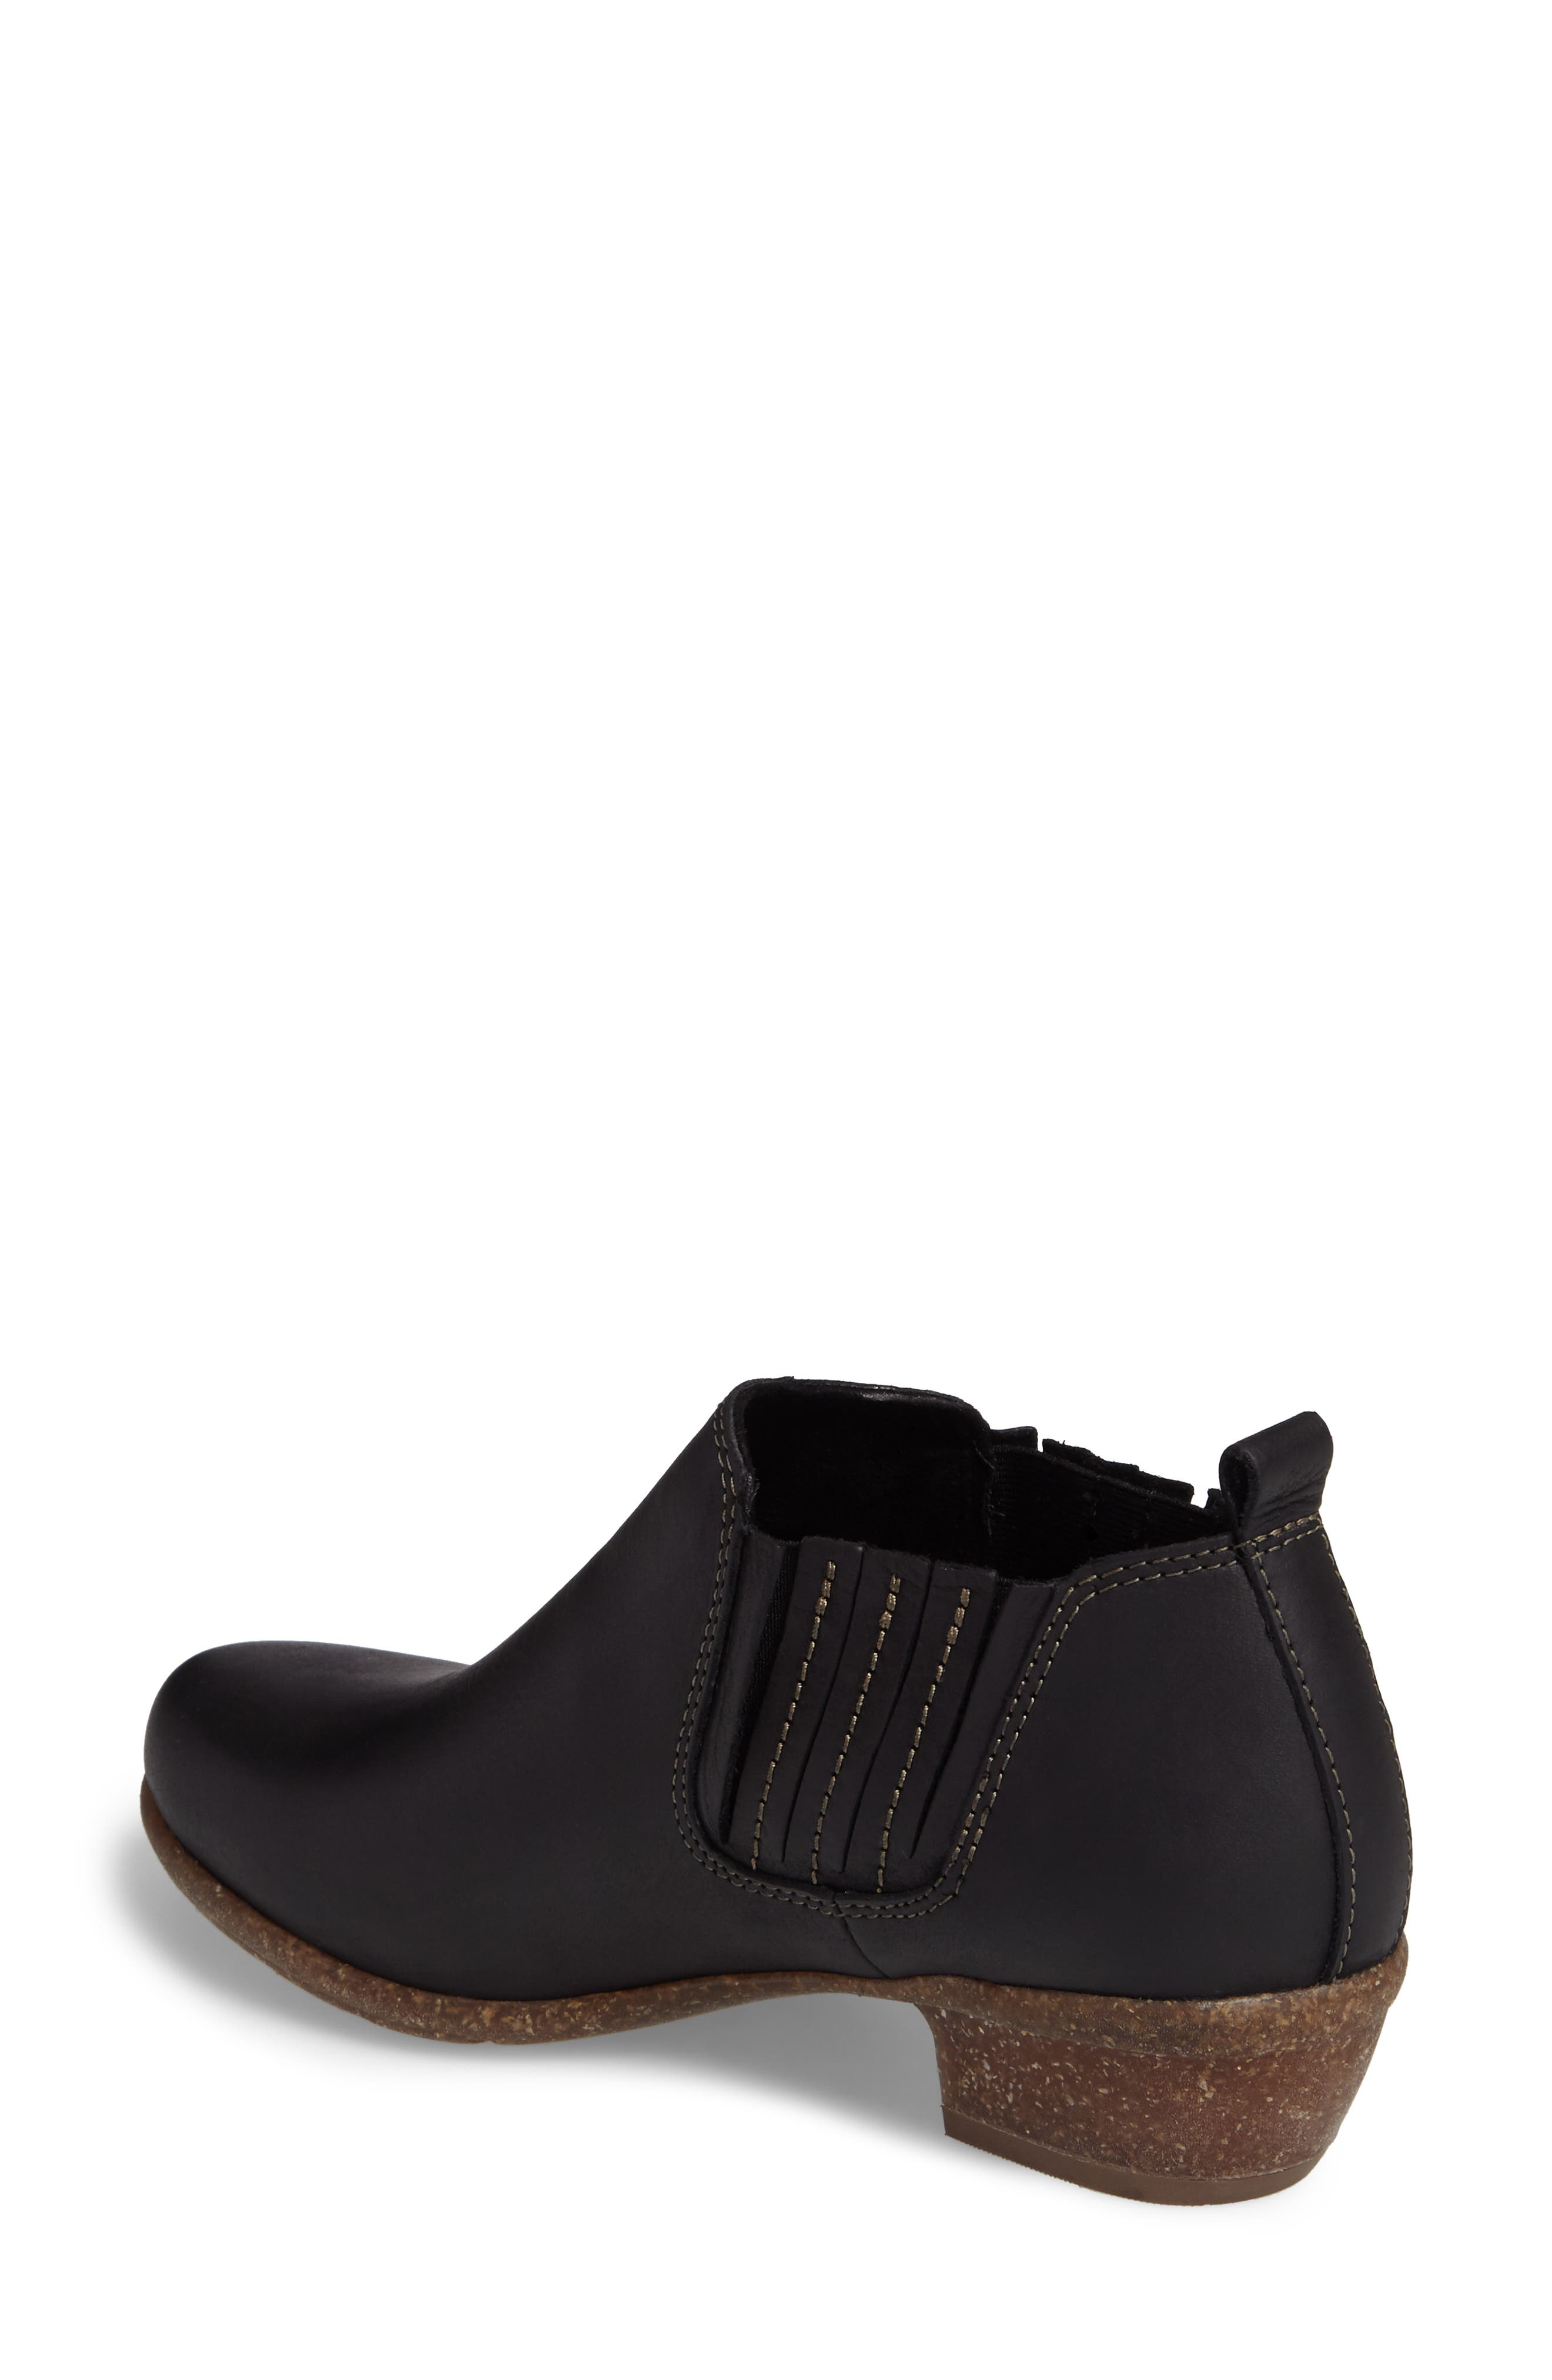 CLARKS<SUP>®</SUP>, Wilrose Jade Low Chelsea Bootie, Alternate thumbnail 2, color, 001